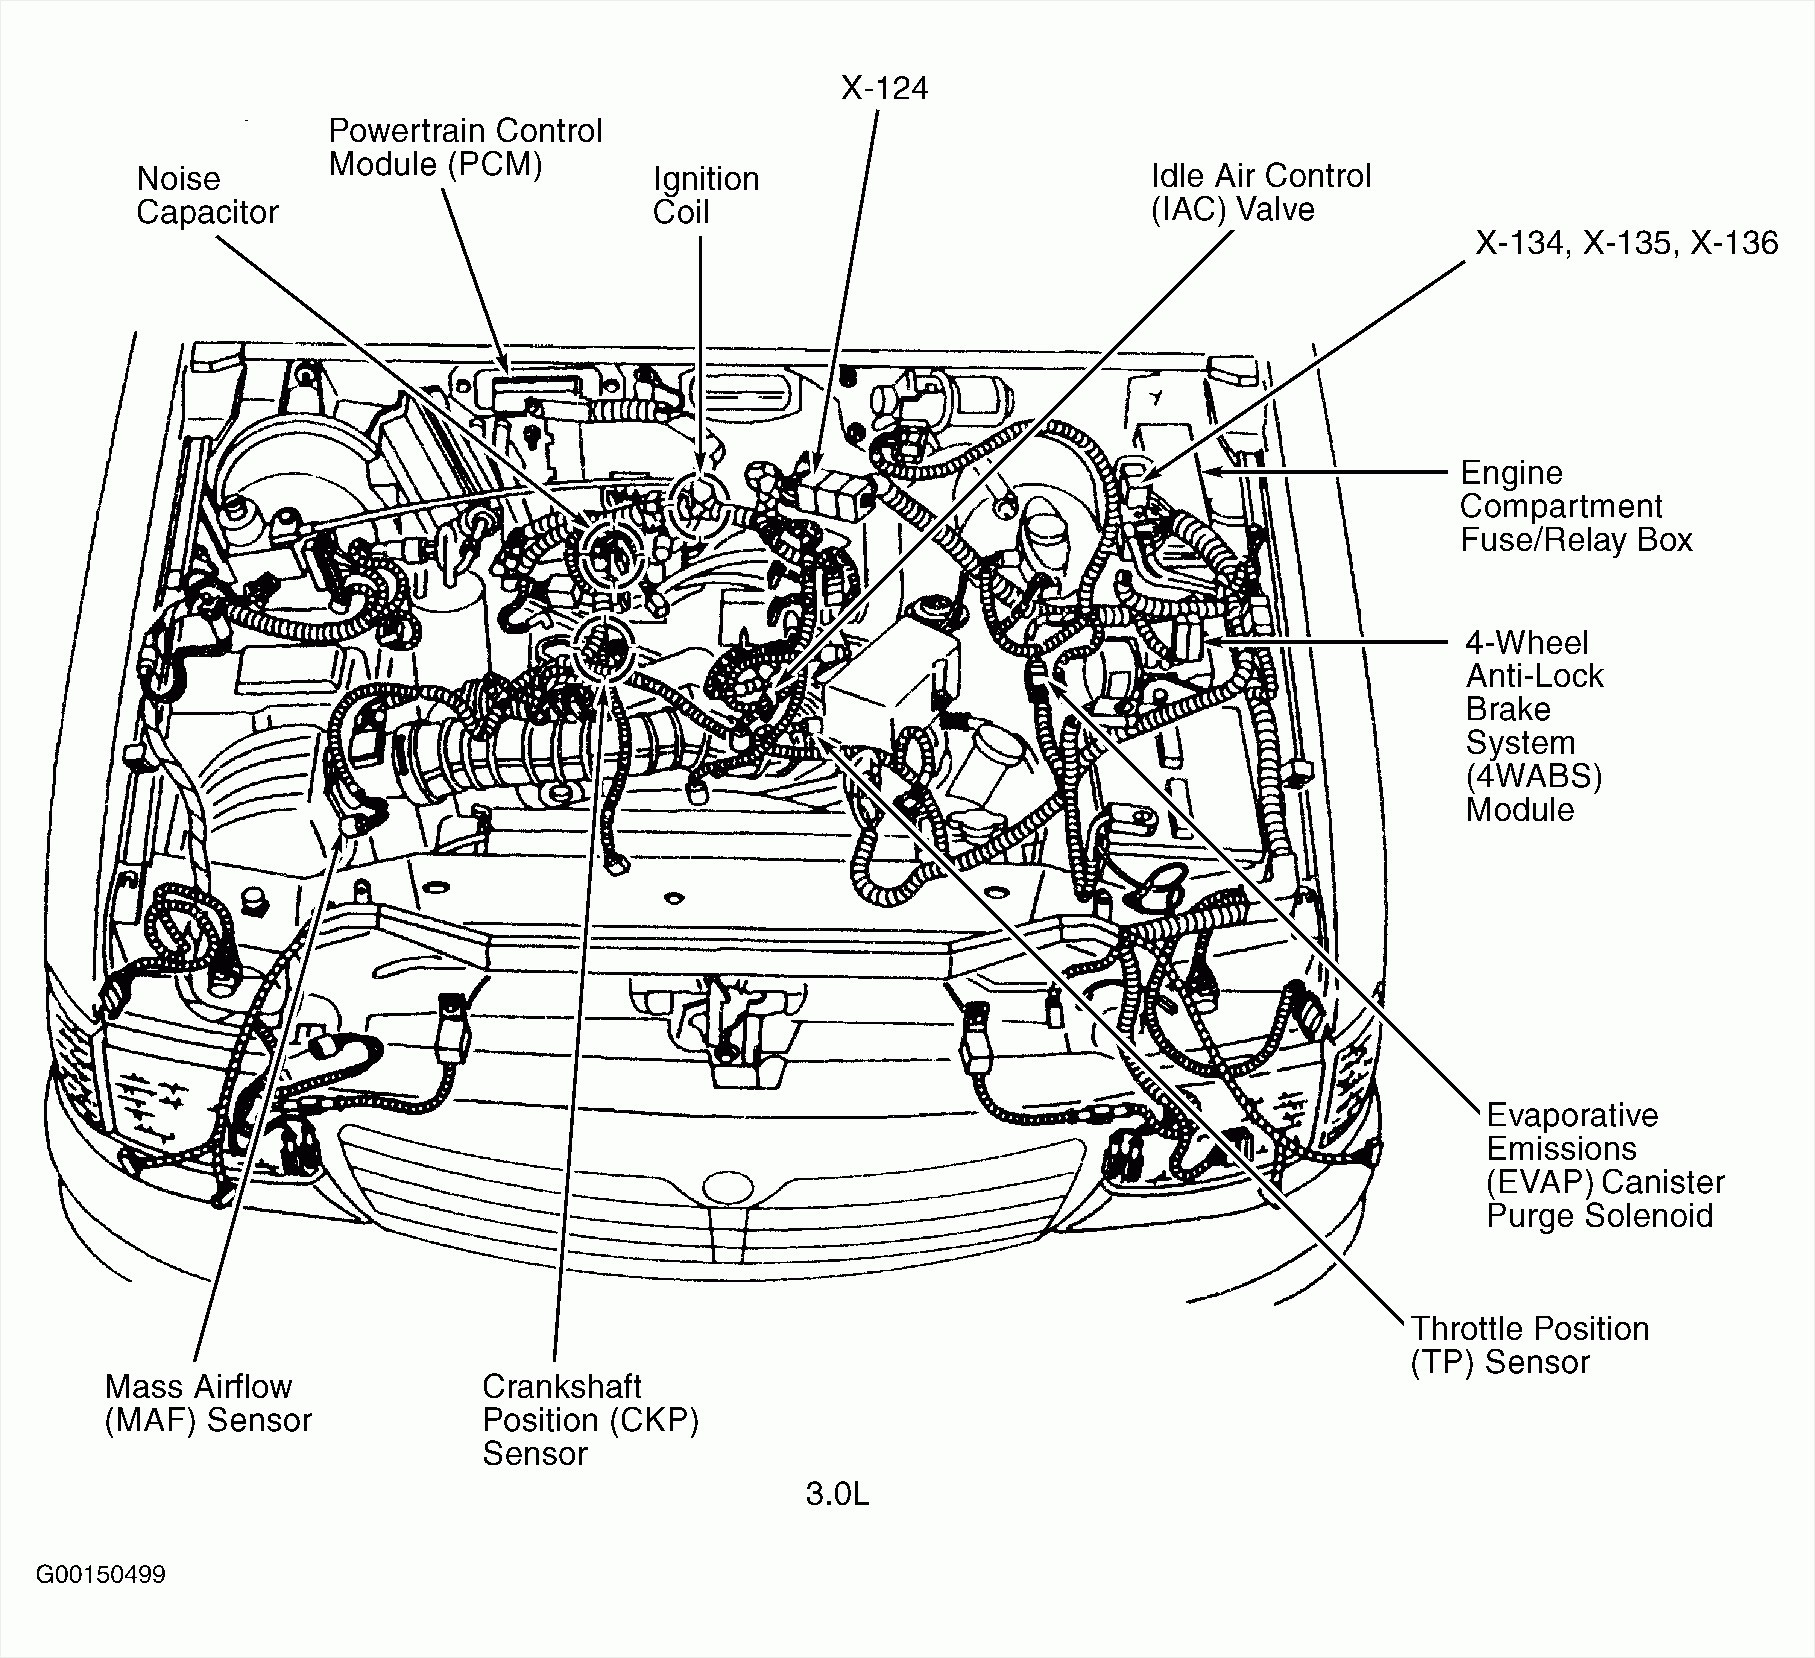 2001 Dodge Grand Caravan Engine Diagram Wiring Diagram Wide Alternator Wide Alternator Lasuiteclub It